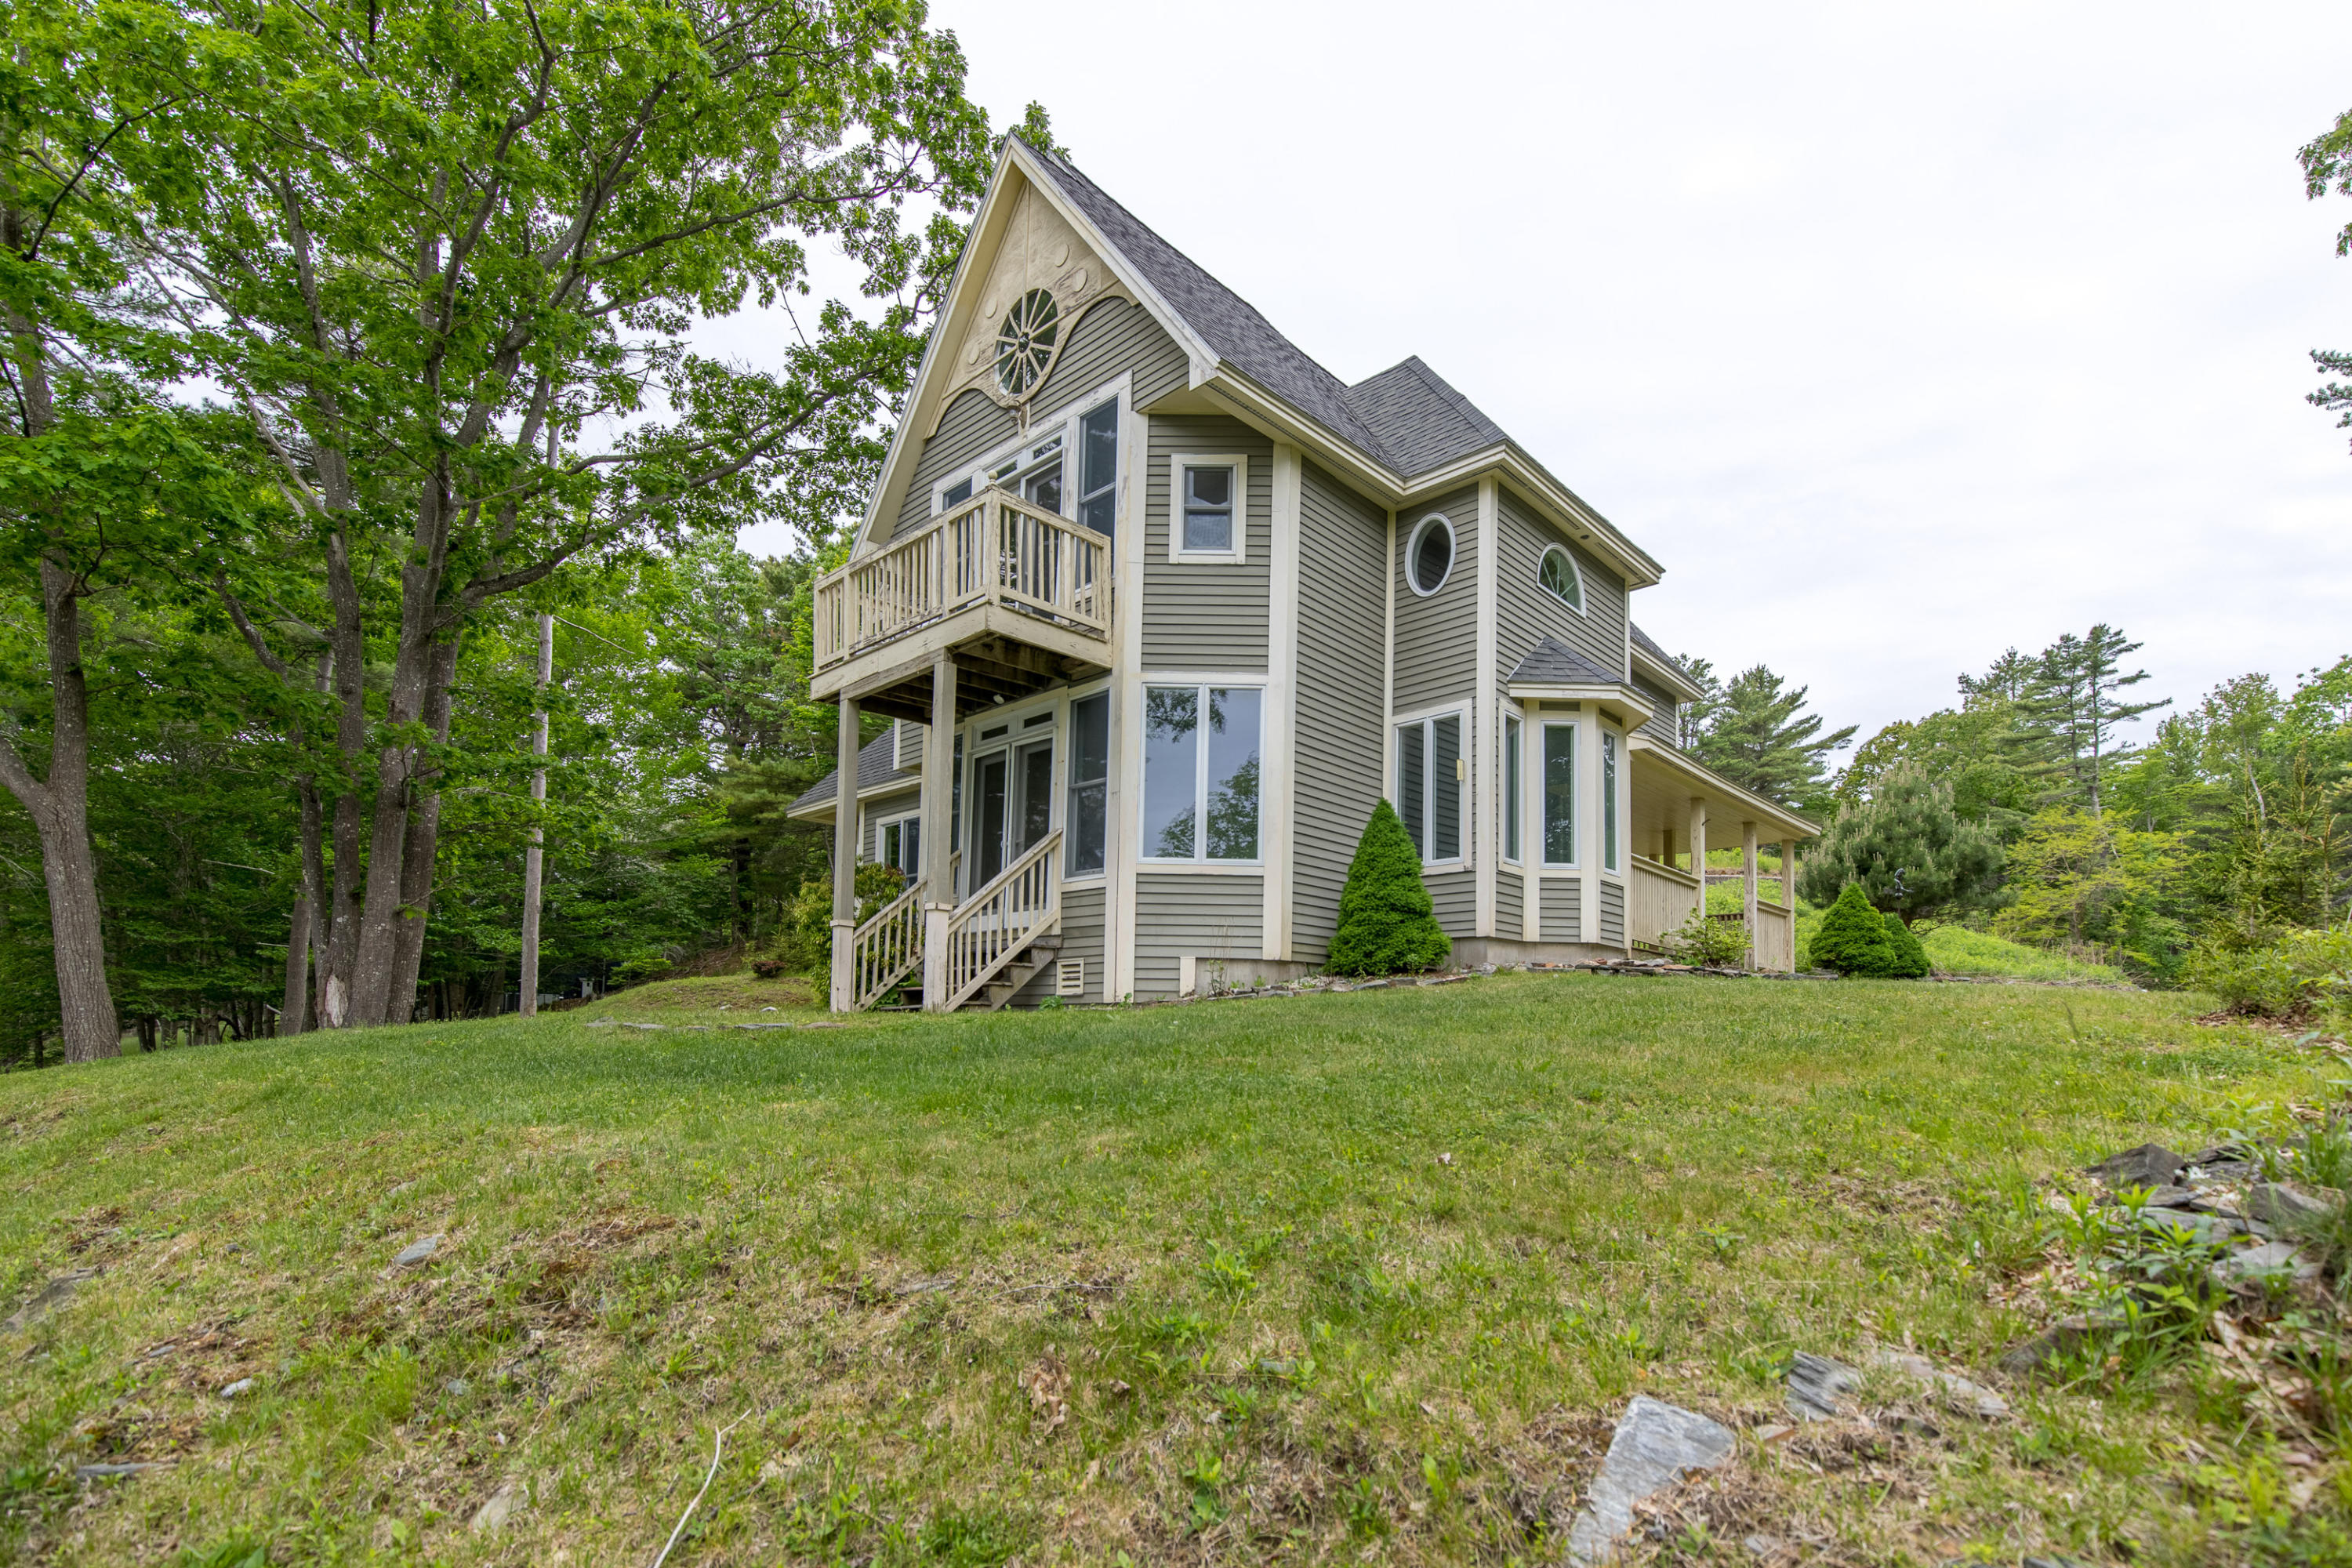 Main image for MLS listing 1456003